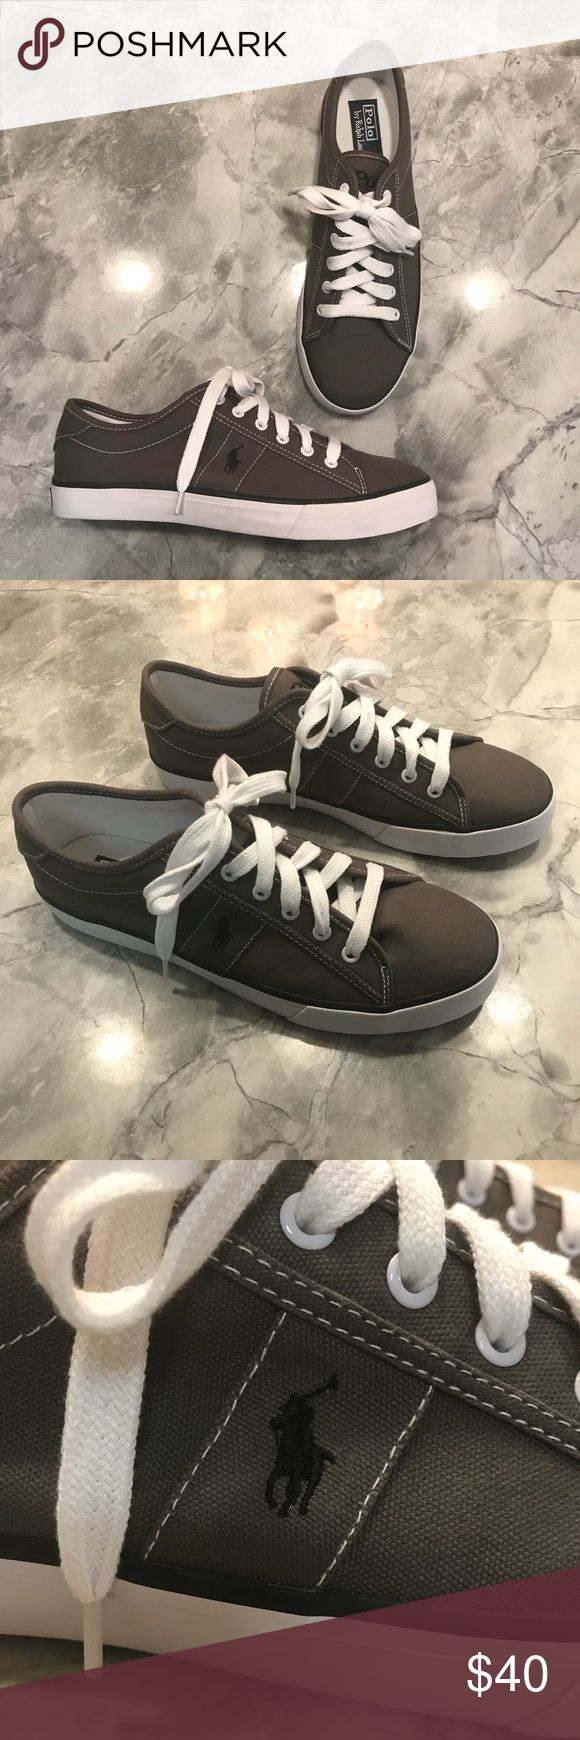 "Polo Ralph Lauren ""Clifton"" Gray Sneakers Men's 10 Polo Ralph Lauren ""Clifton"" Gray Canvas Sneakers. Men's size 10D. Brand new, never worn. A must have for the casual men's closet. Polo by Ralph Lauren Shoes Sneakers"